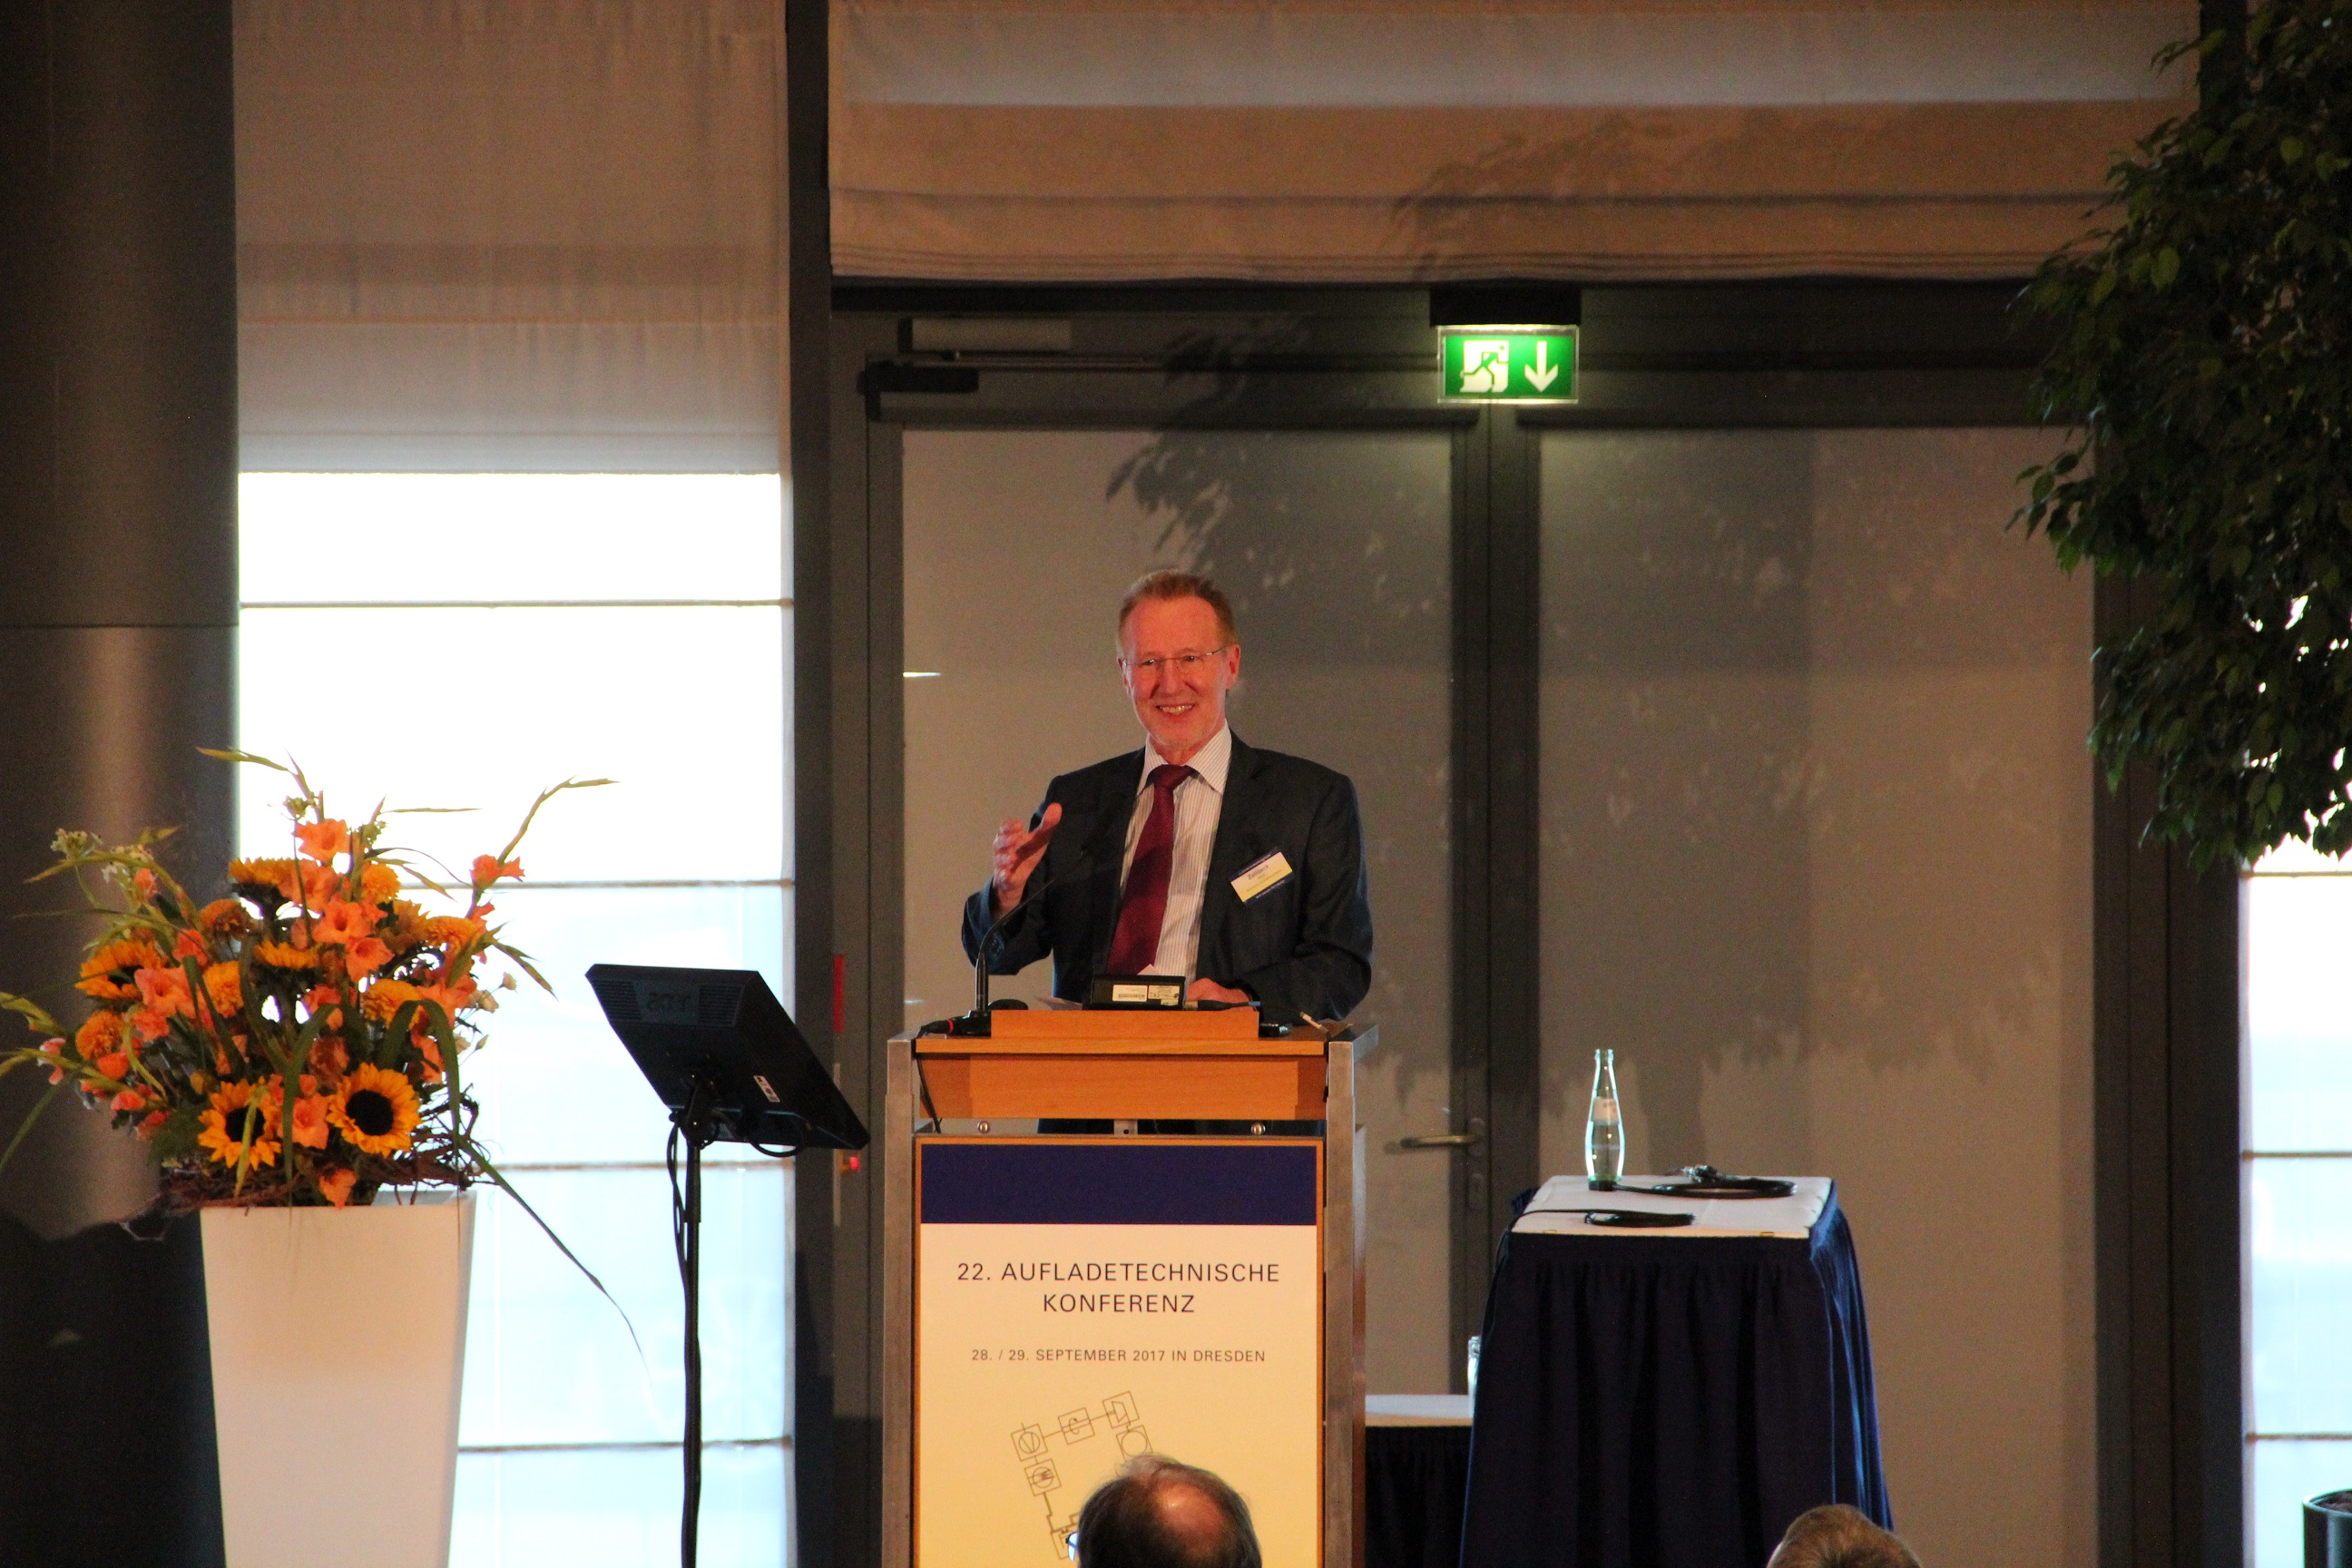 Prof. Dr.-Ing. H. Zellbeck, Conference Chairman